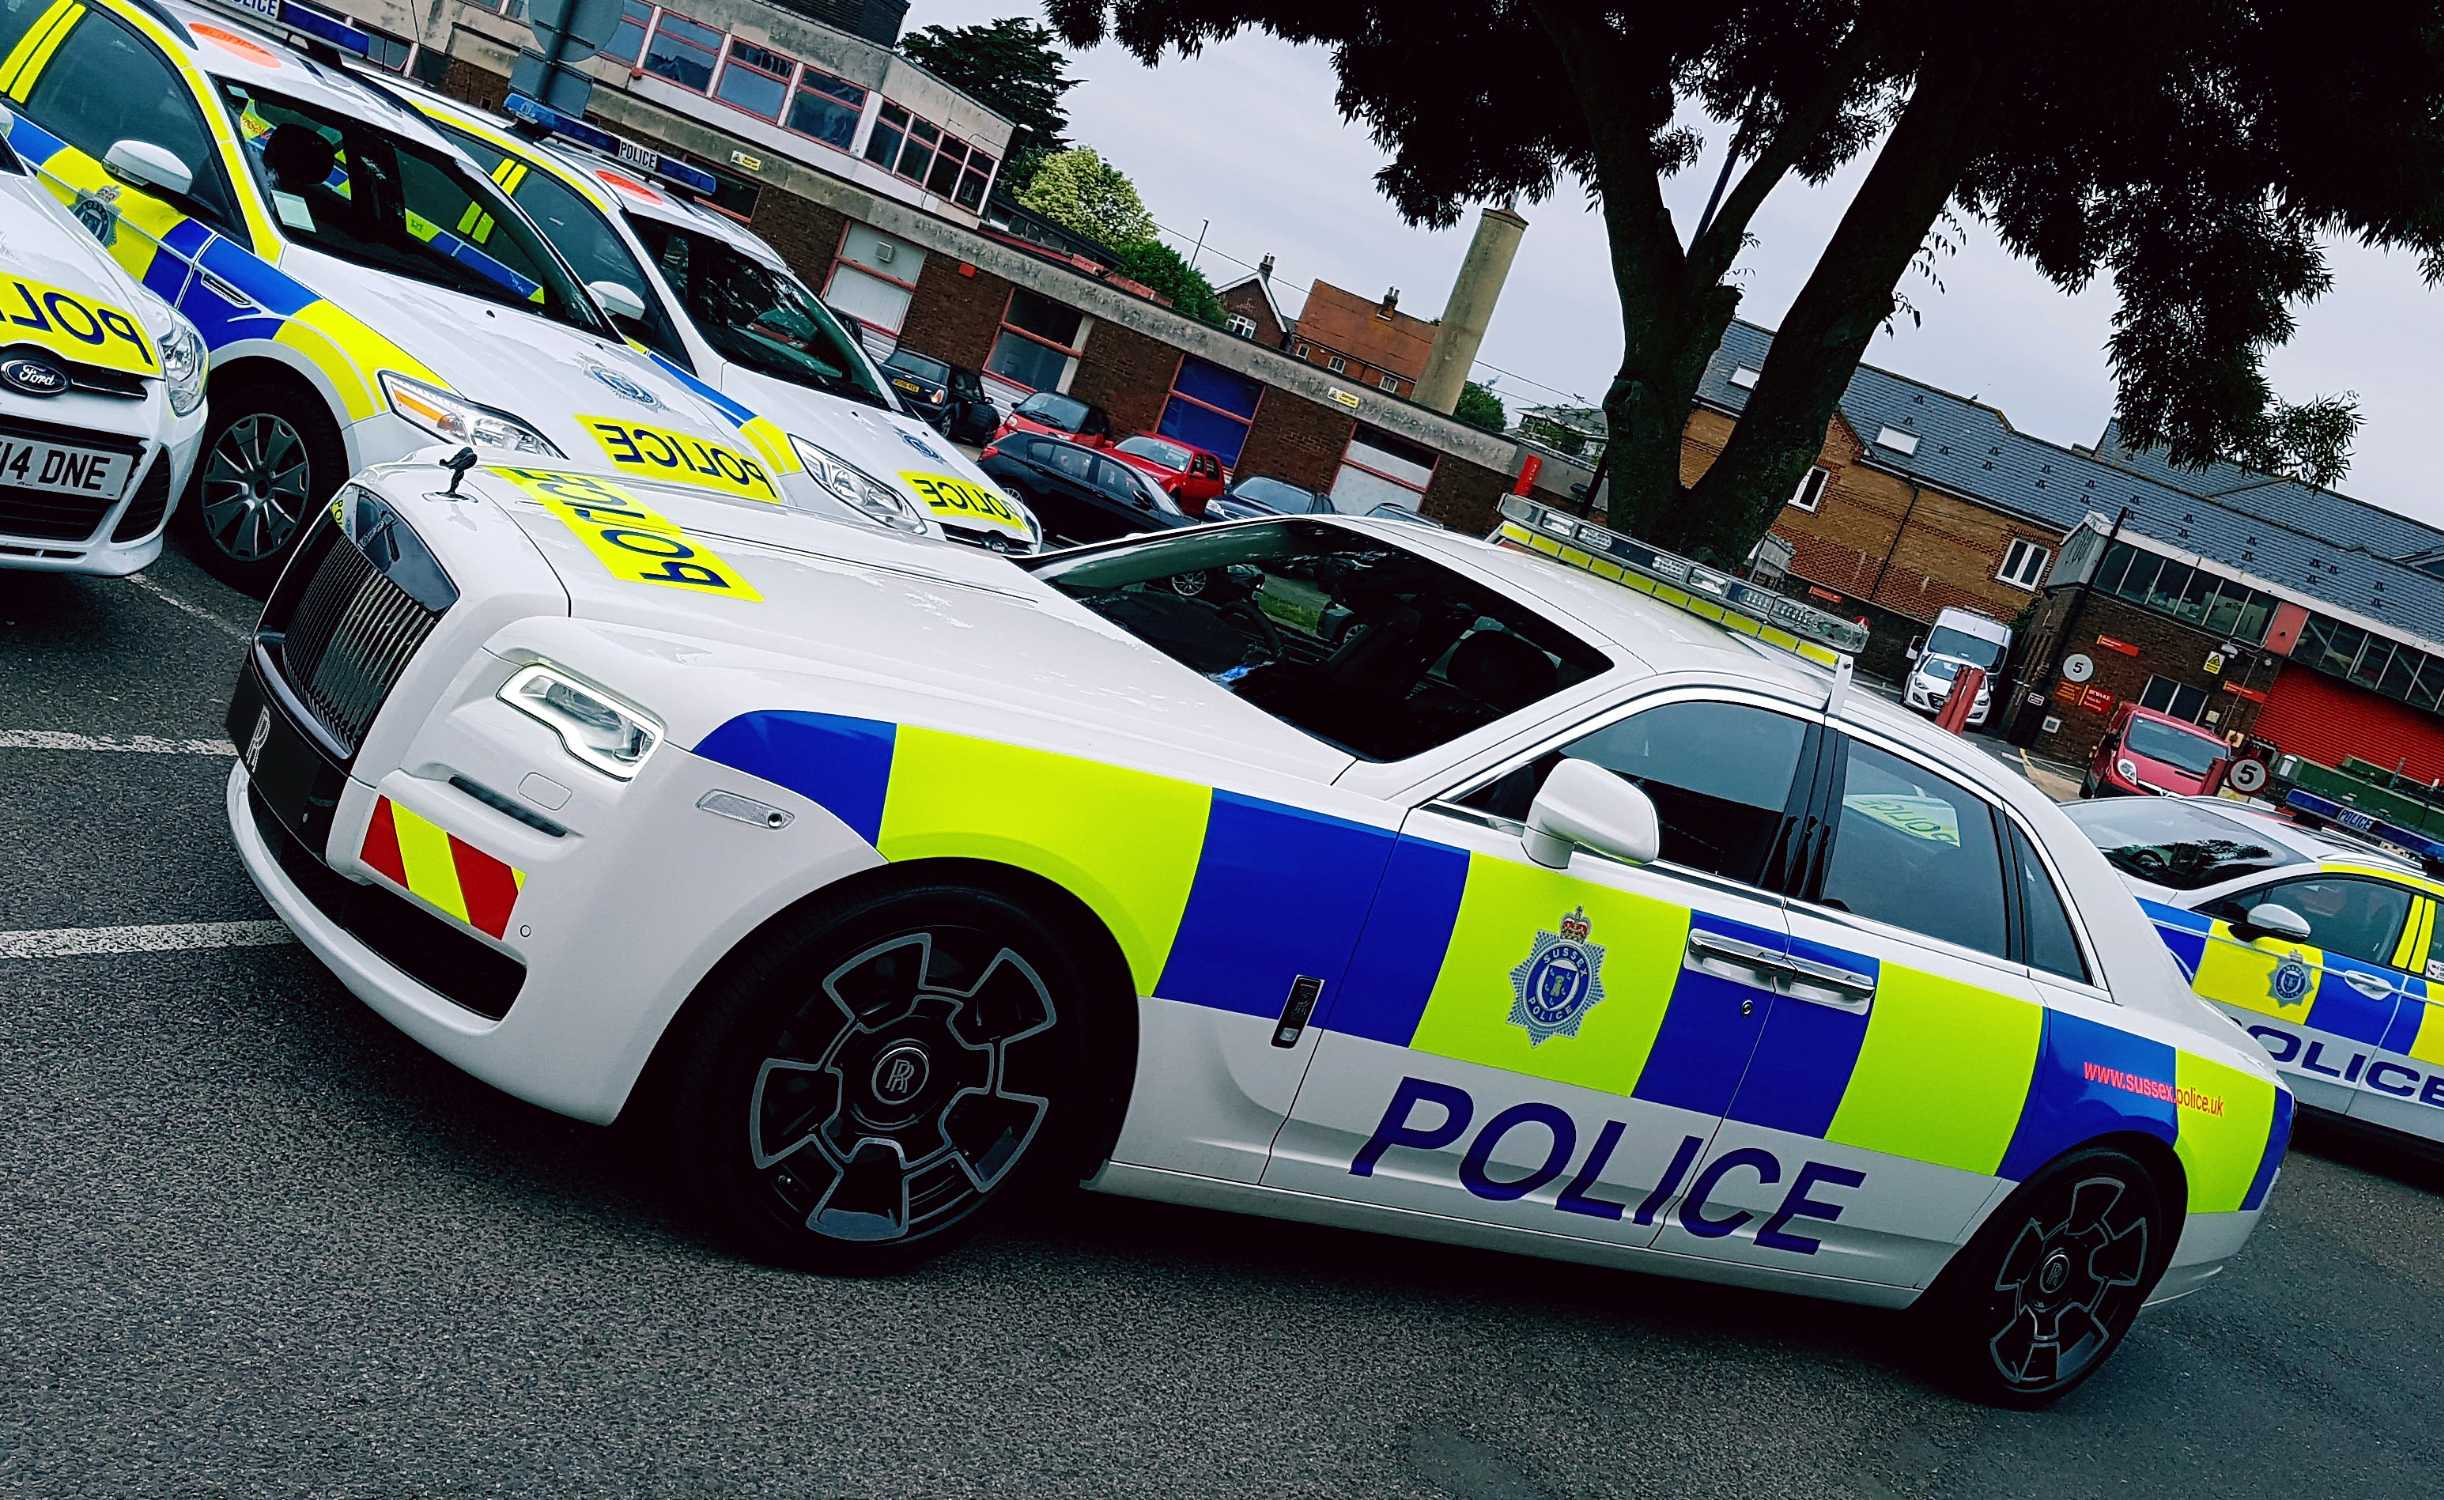 ROLLS ROYCE MOTOR CARS SUPPORTS SUS POLICE AT THE EVER POPULAR